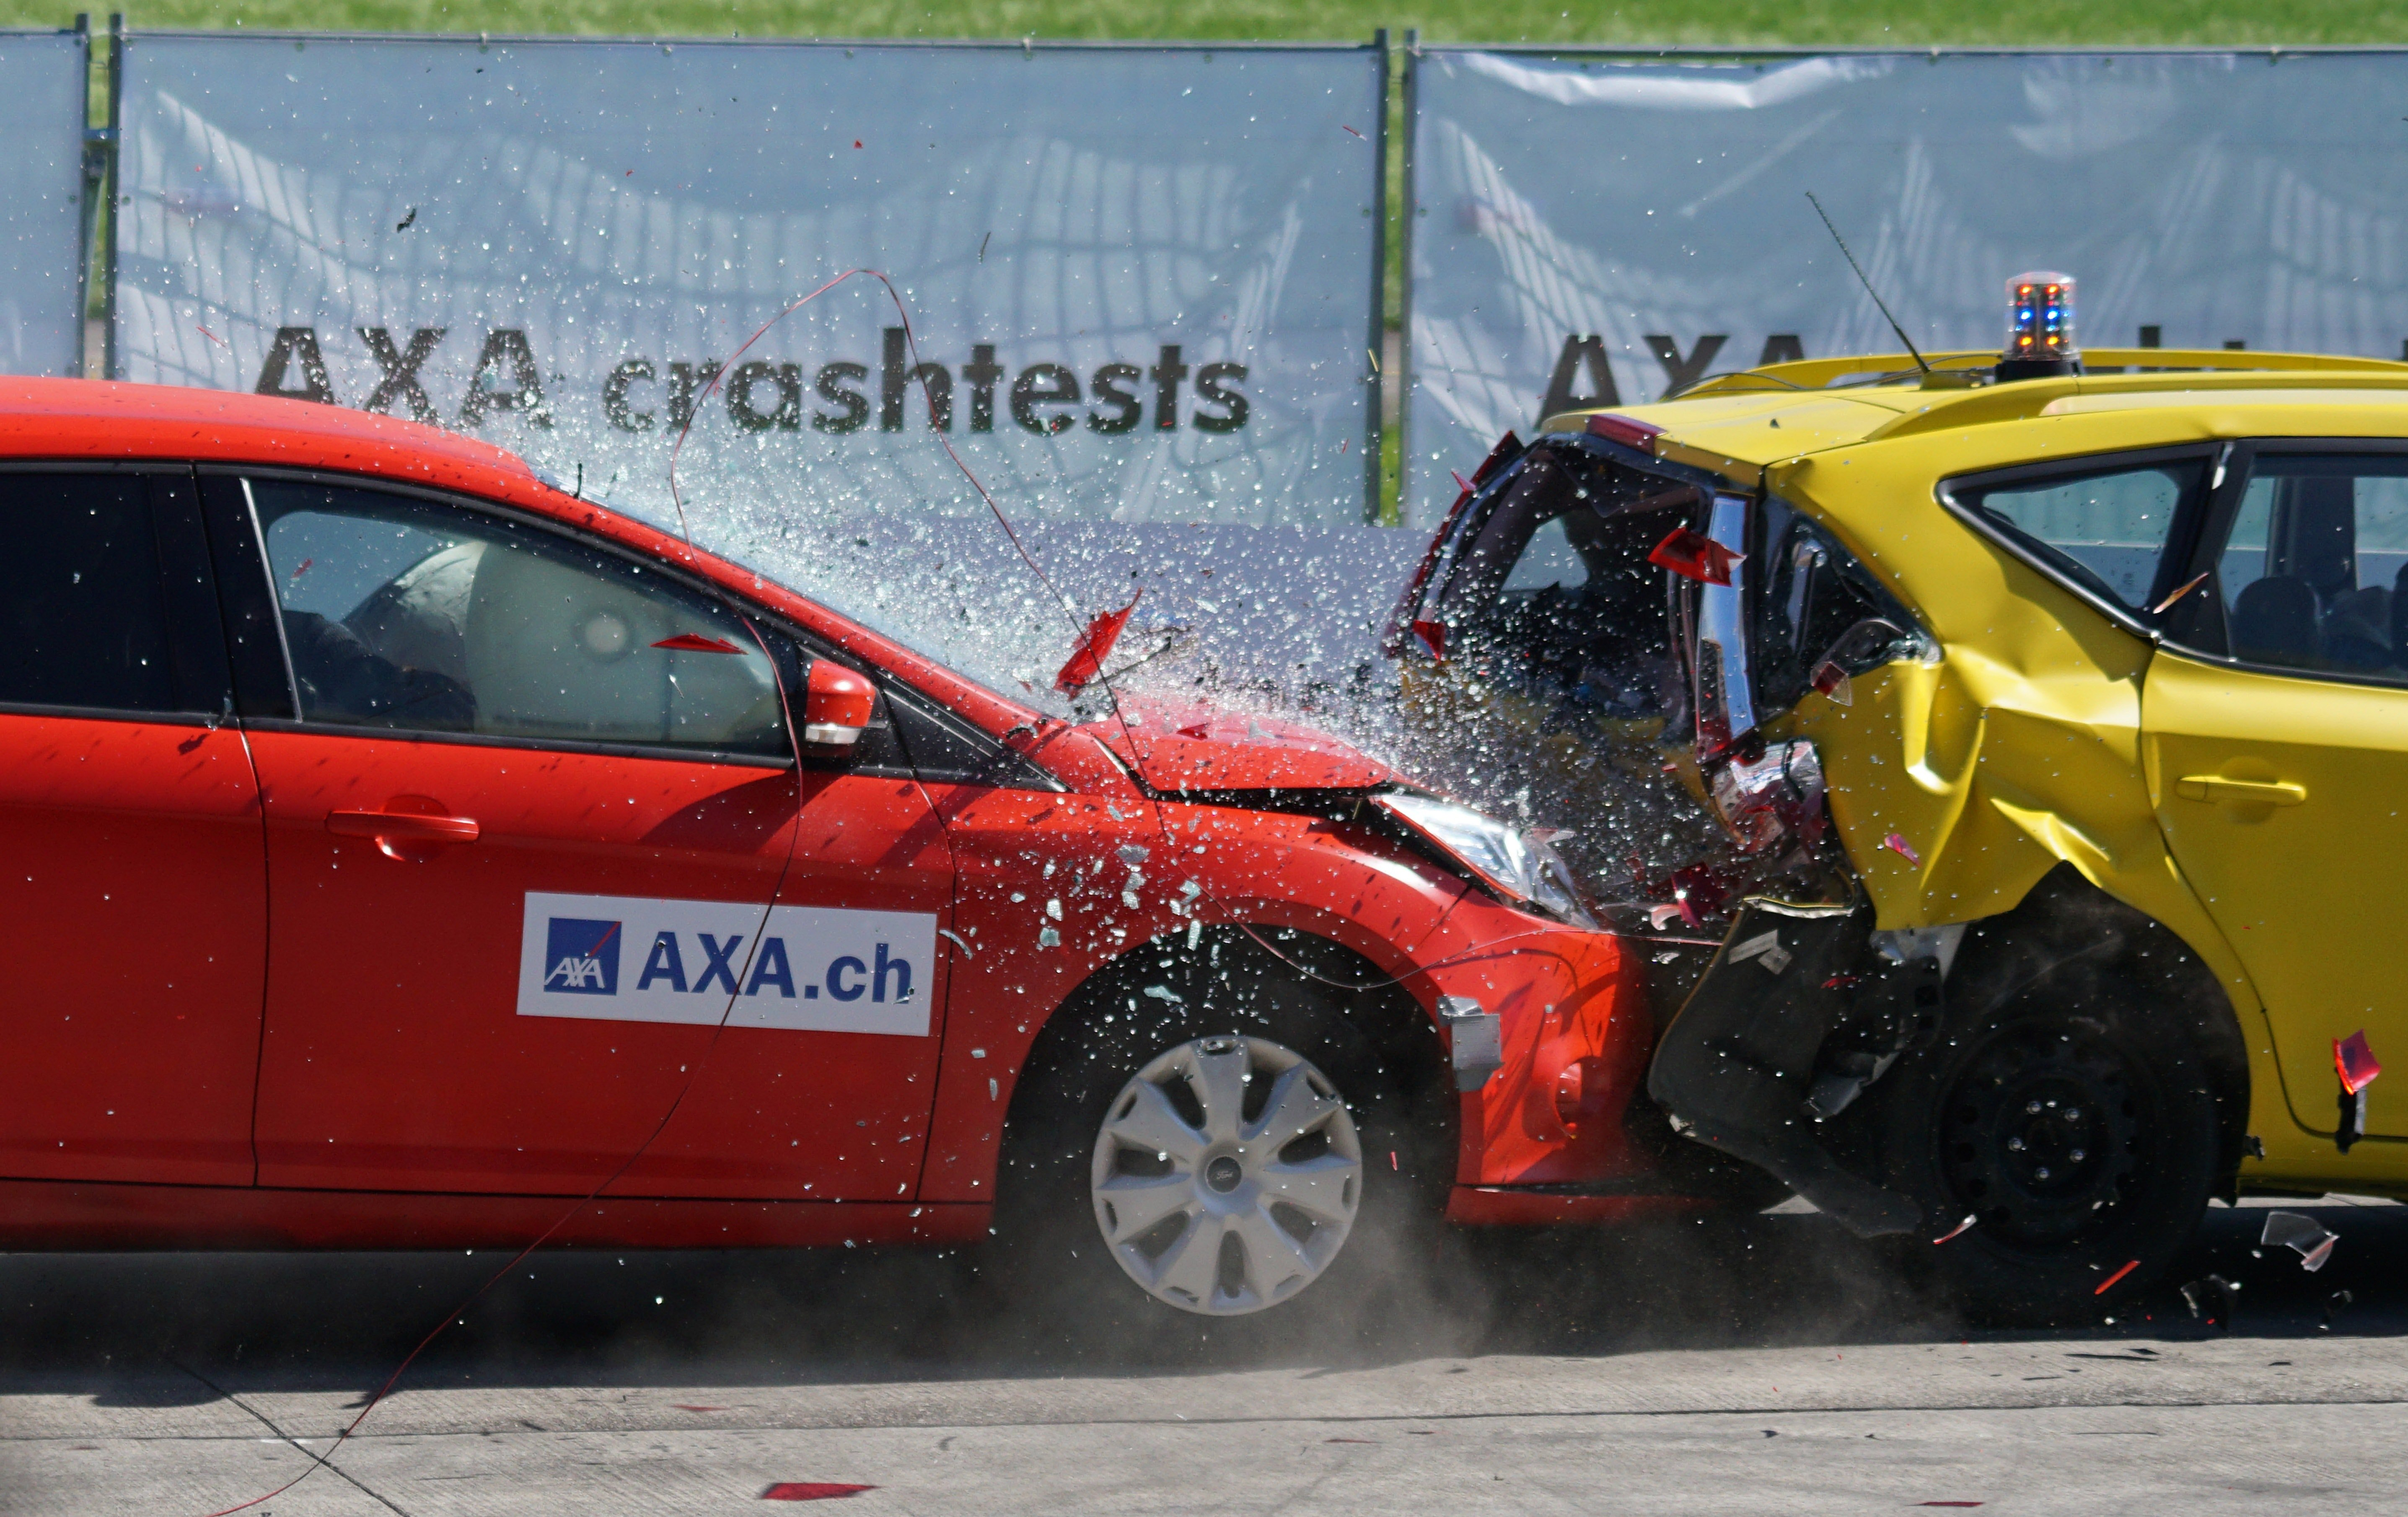 Two cars crashing into each other   Photo: Pexels